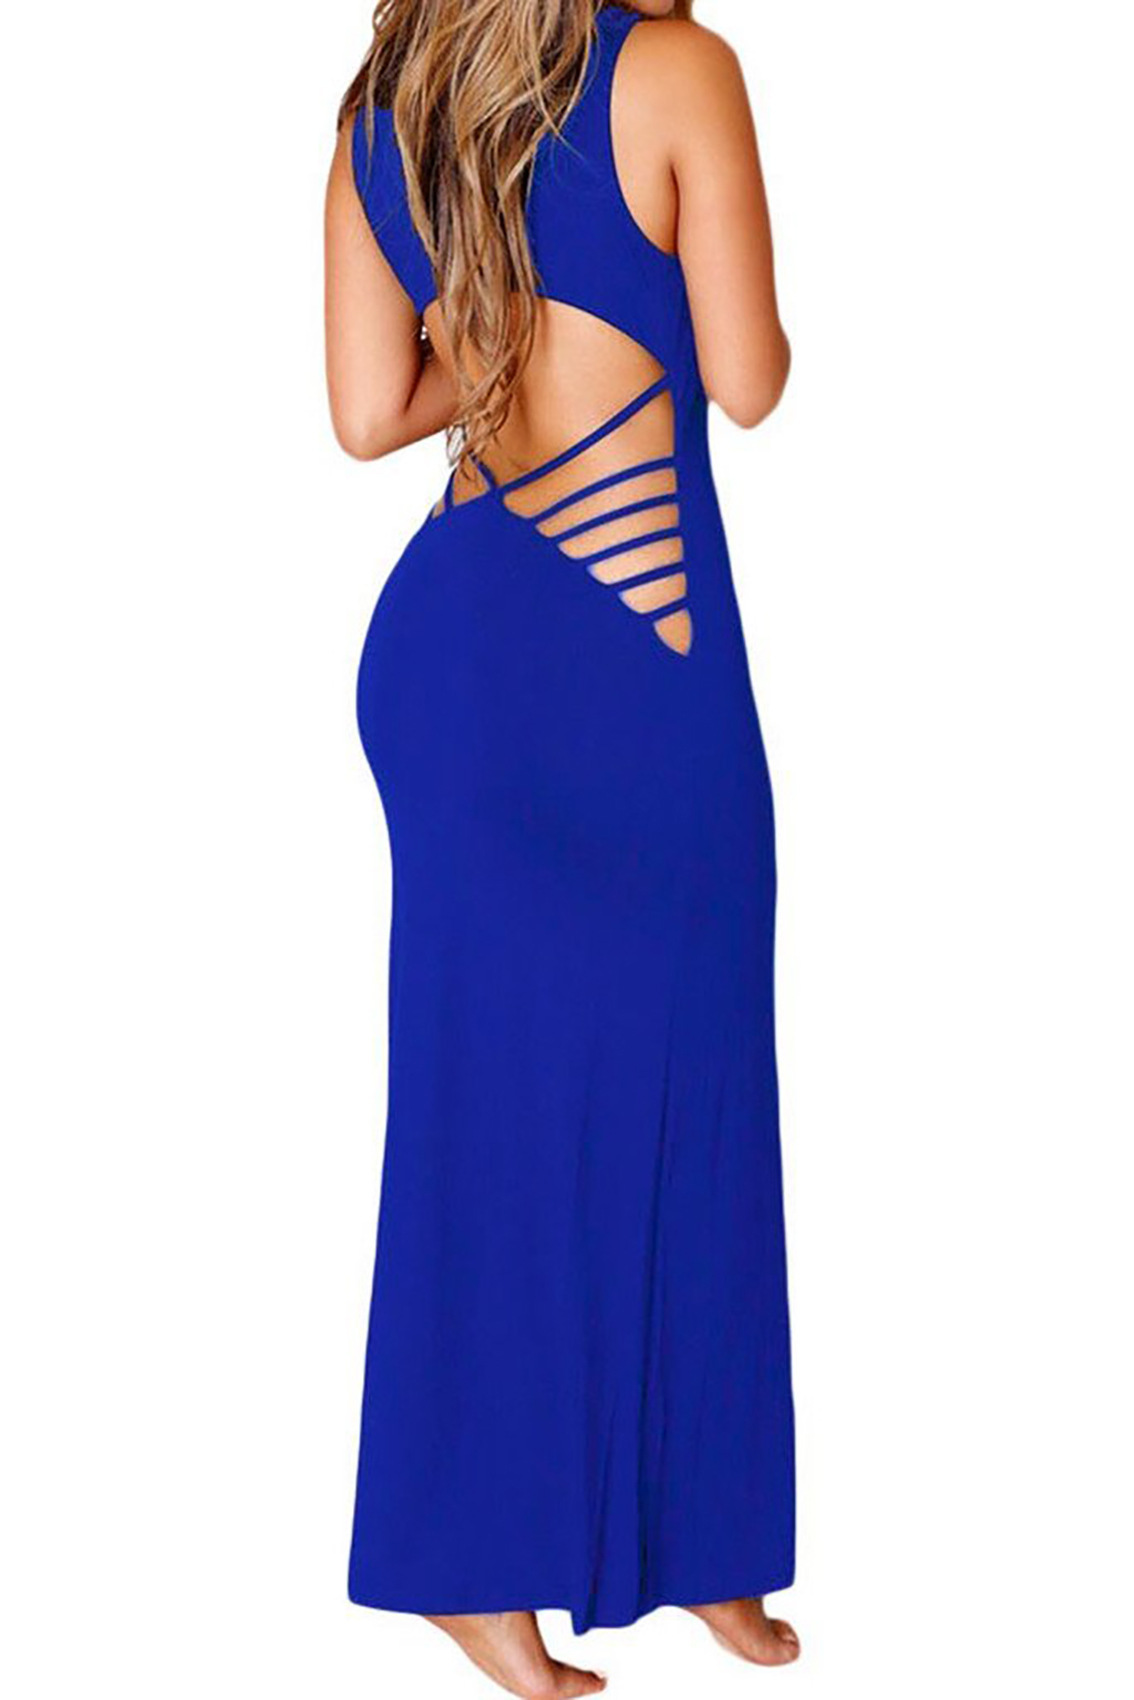 clothes women dress new ladies female womens sexy cool high classics retro elegance parties lovehot dresses in Dresses from Women 39 s Clothing